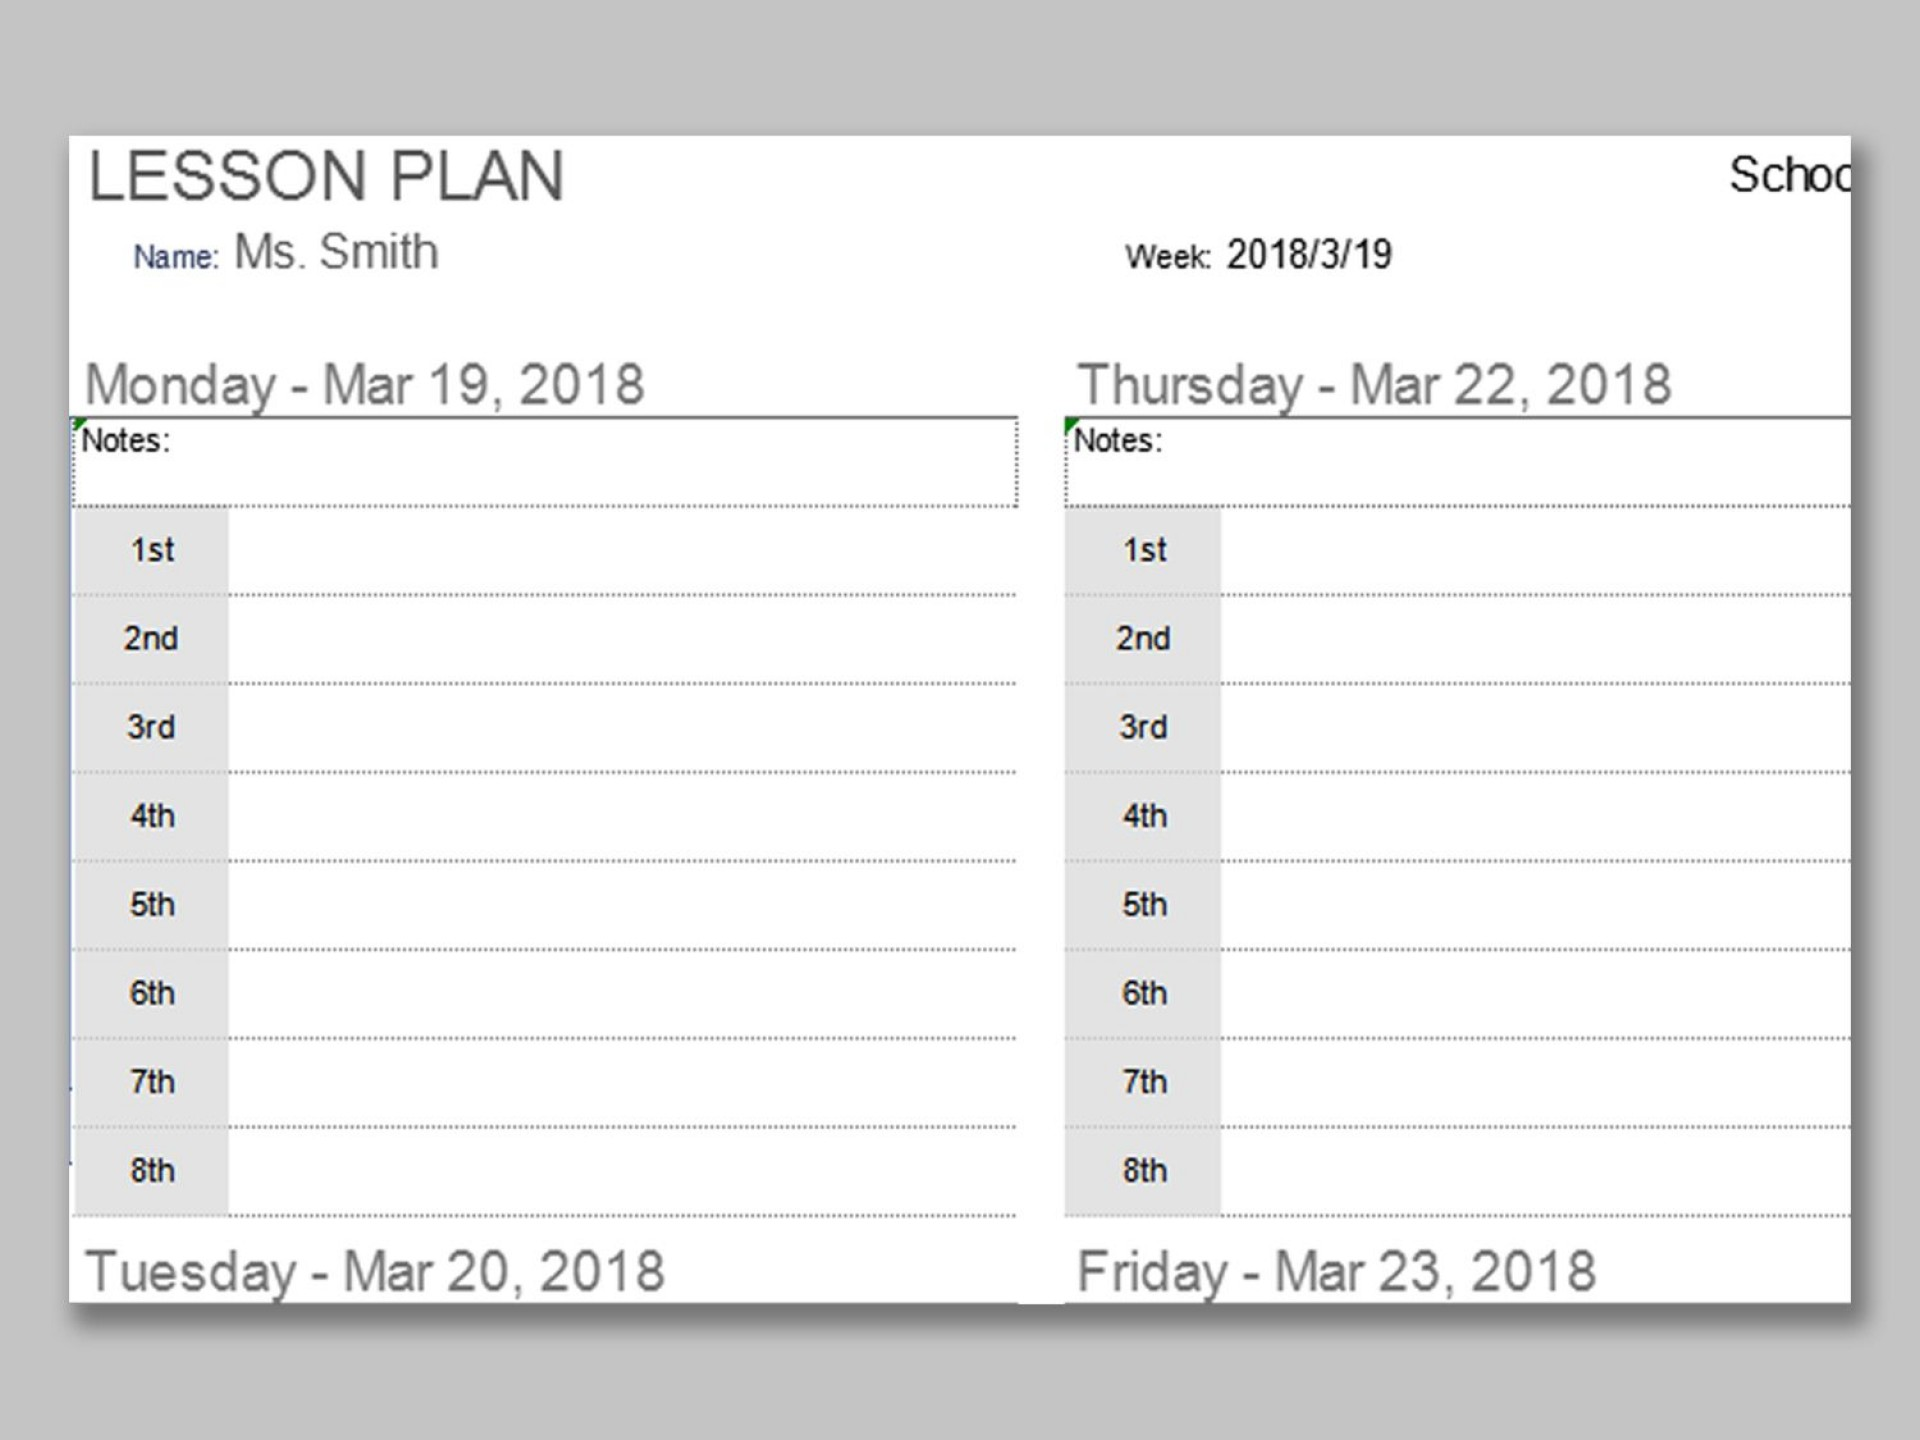 001 Impressive Weekly Lesson Plan Template Photo  Preschool Google Doc Editable1920